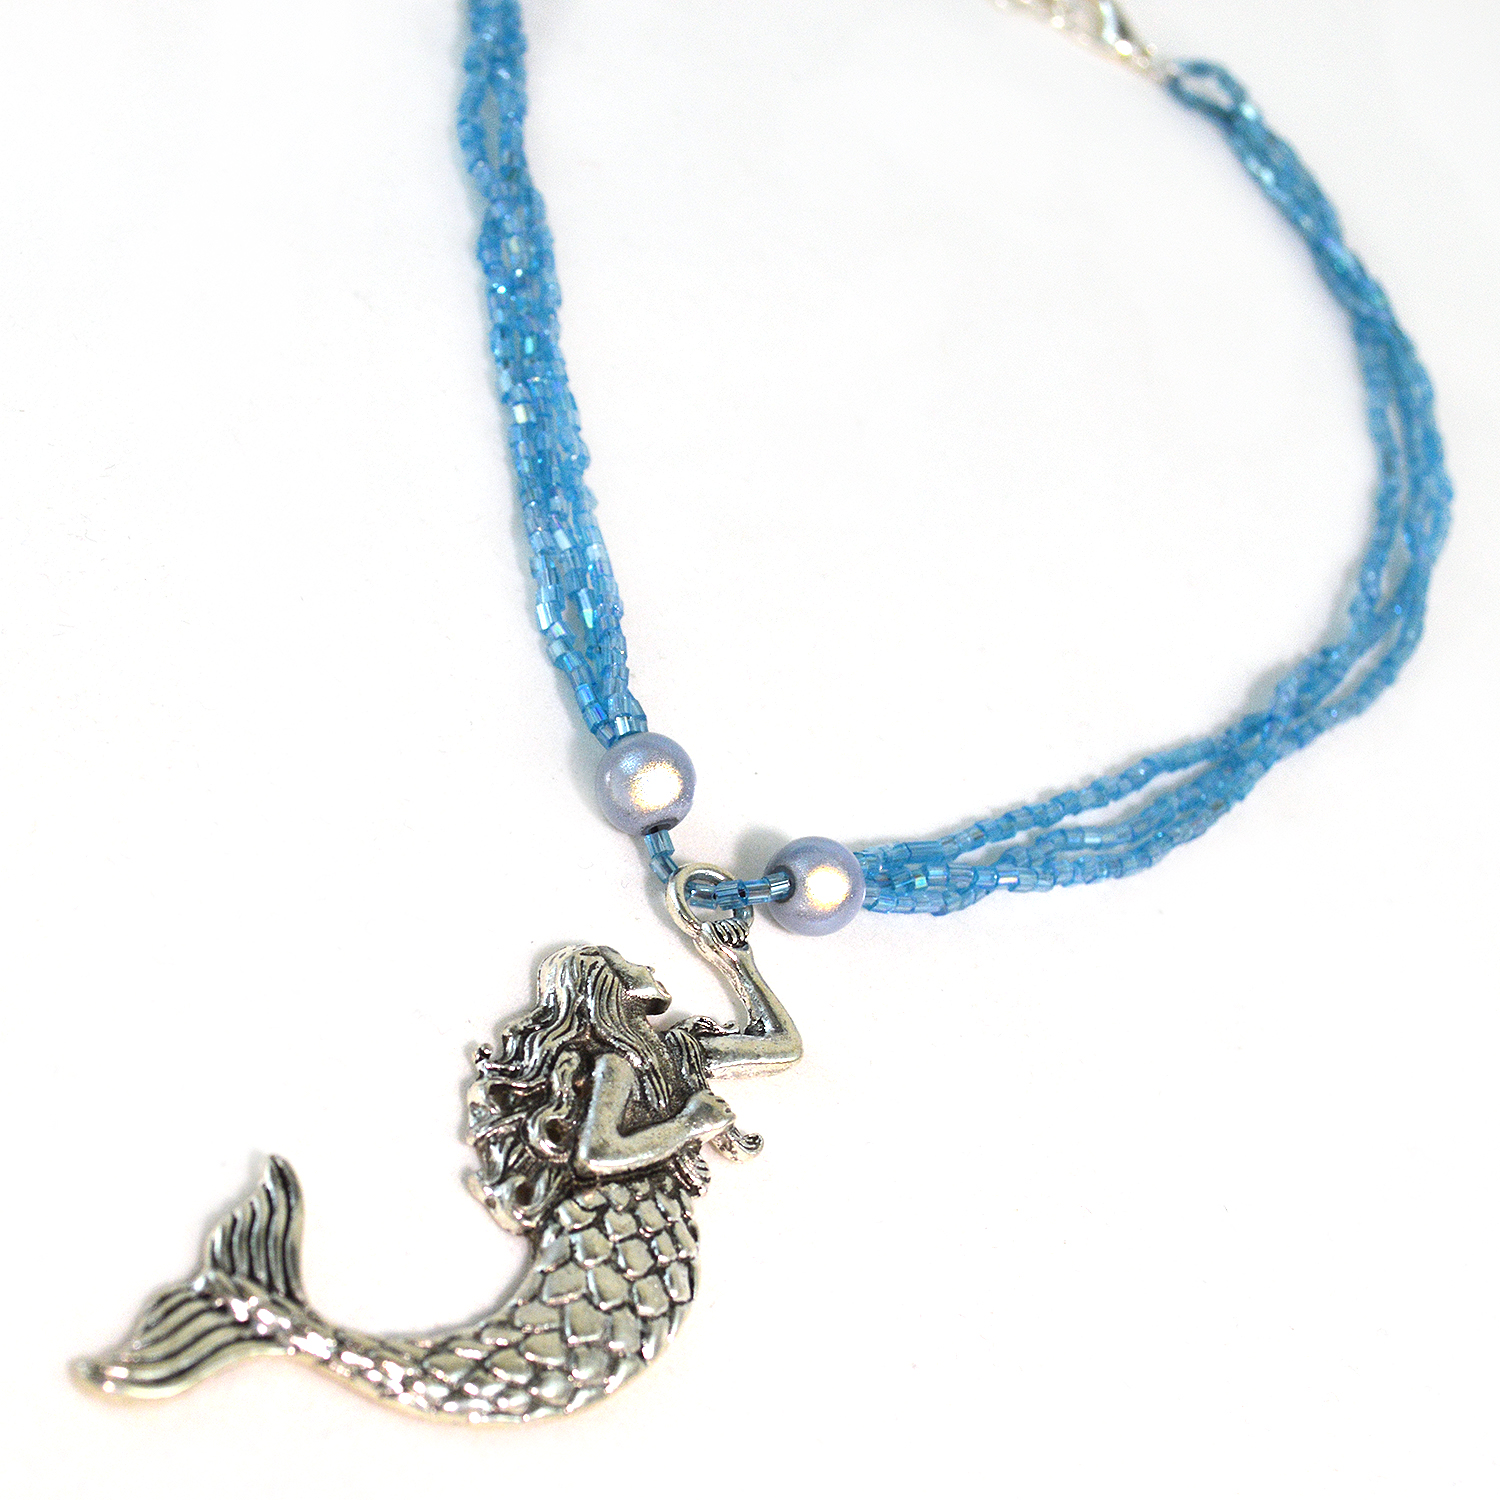 Mermaid Pendant Necklace - 17 to18 Inches - Twisted Pixies